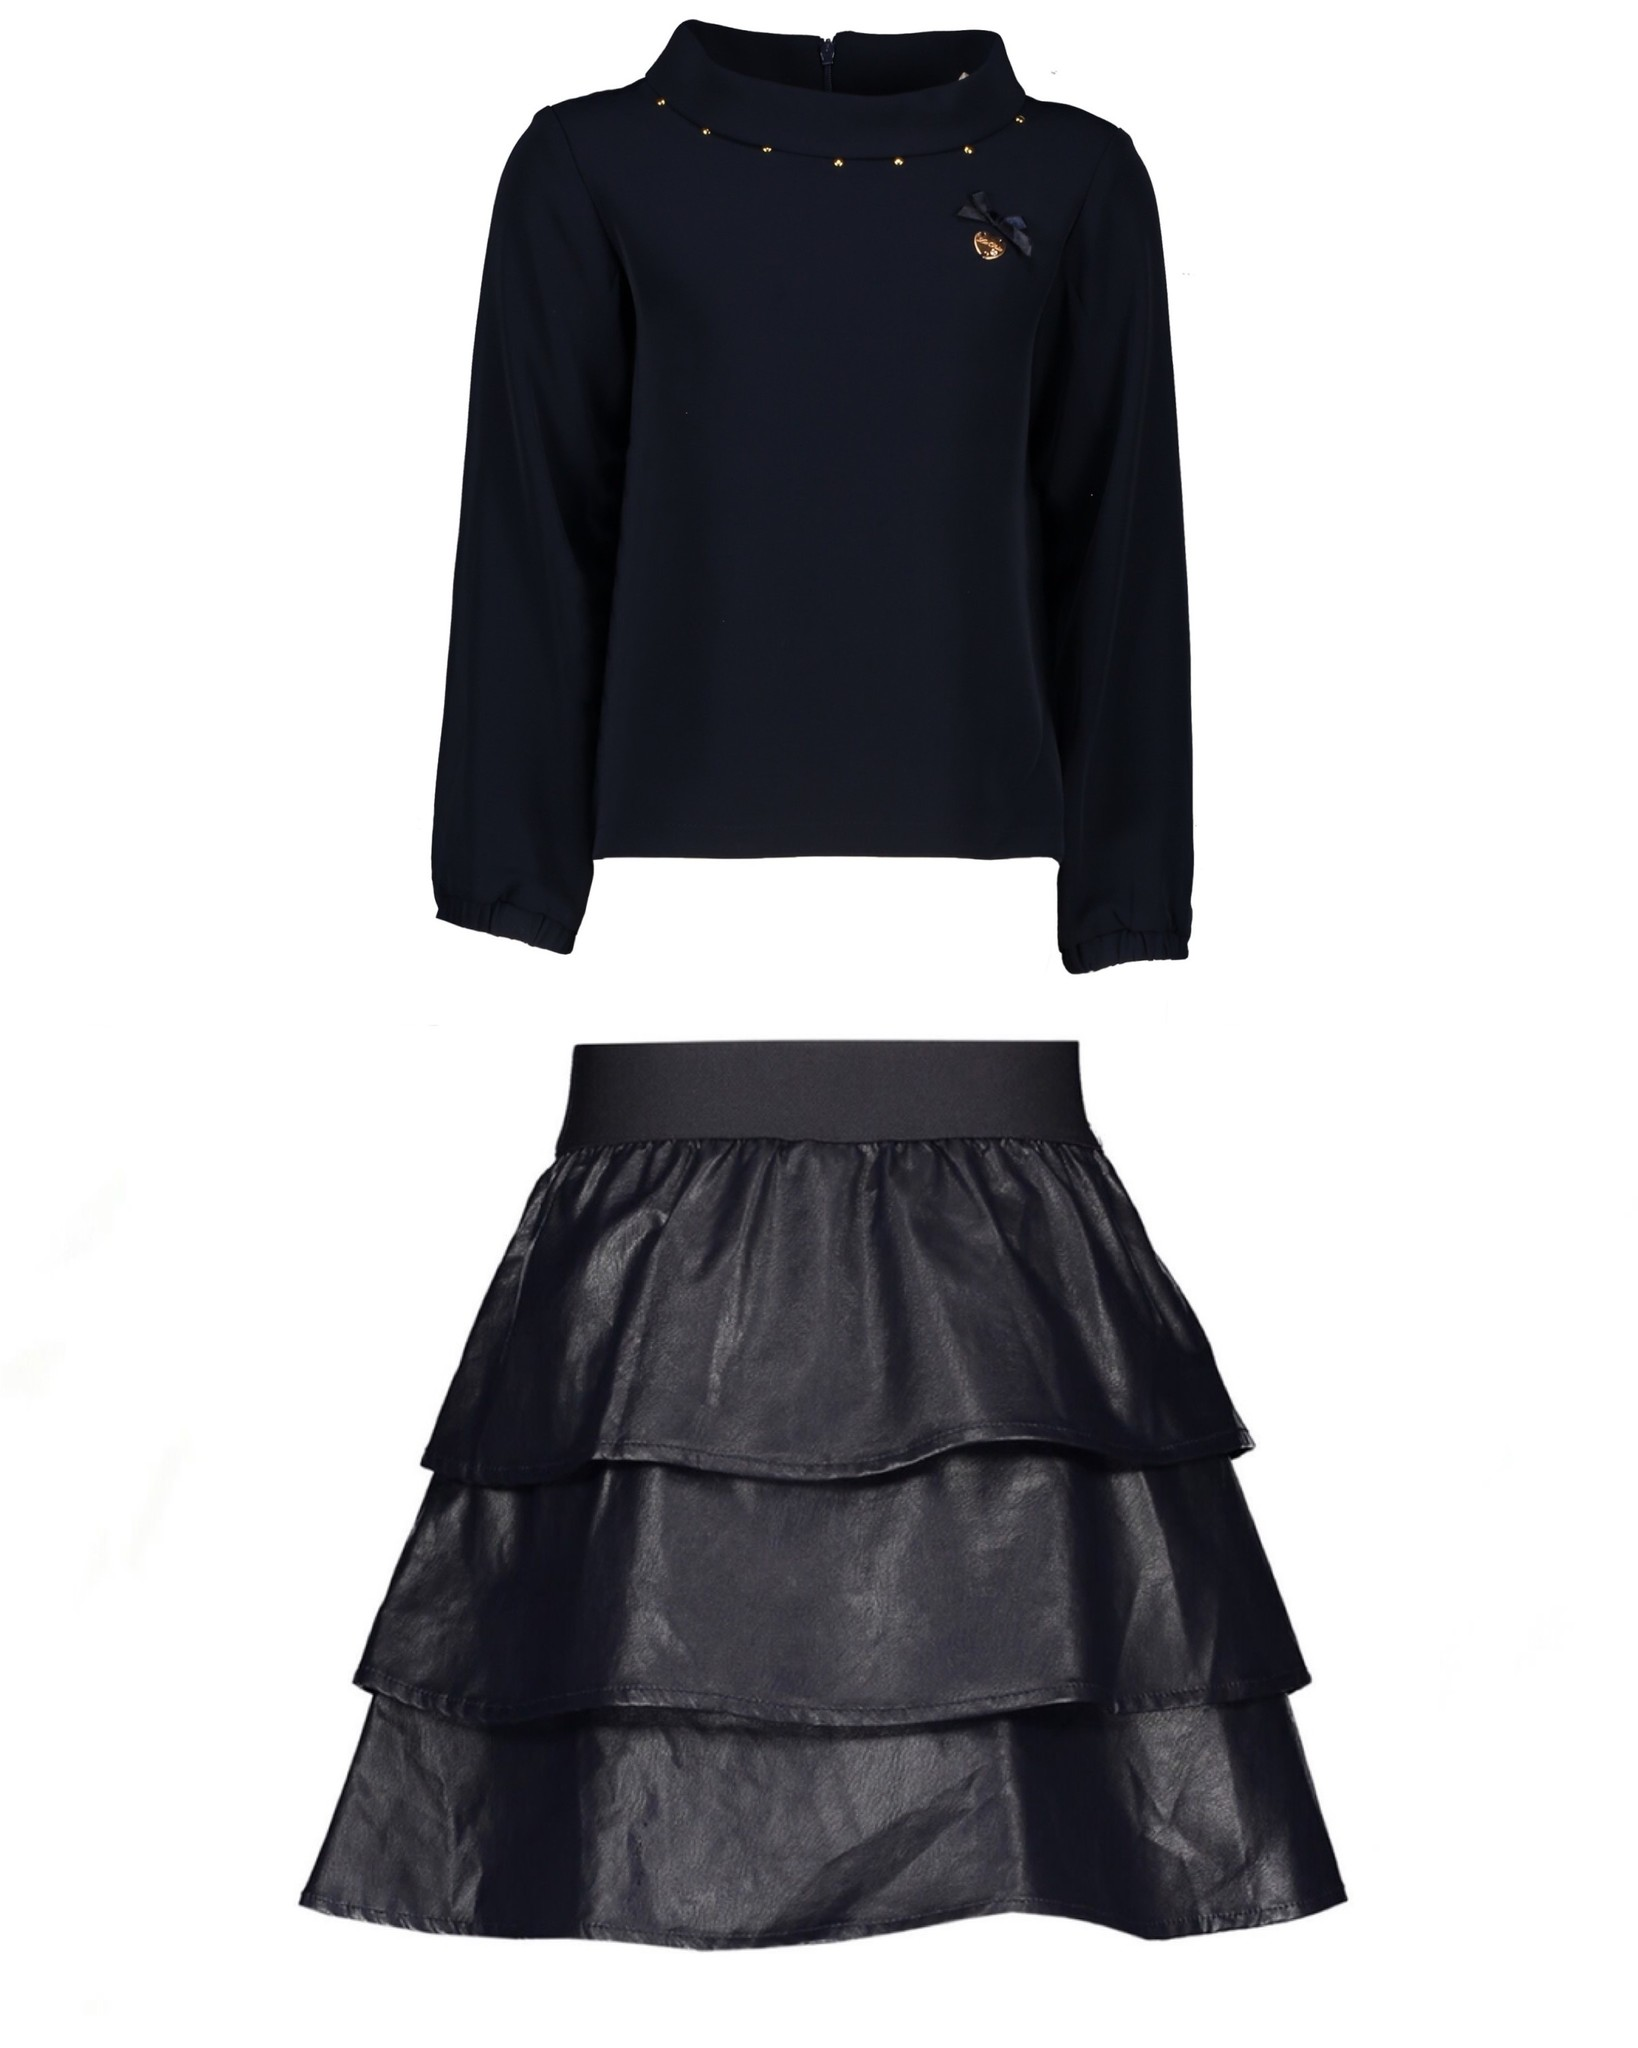 Lechic Le Chic Navy Blouse / Skirt Set SIZE 8-10YRS